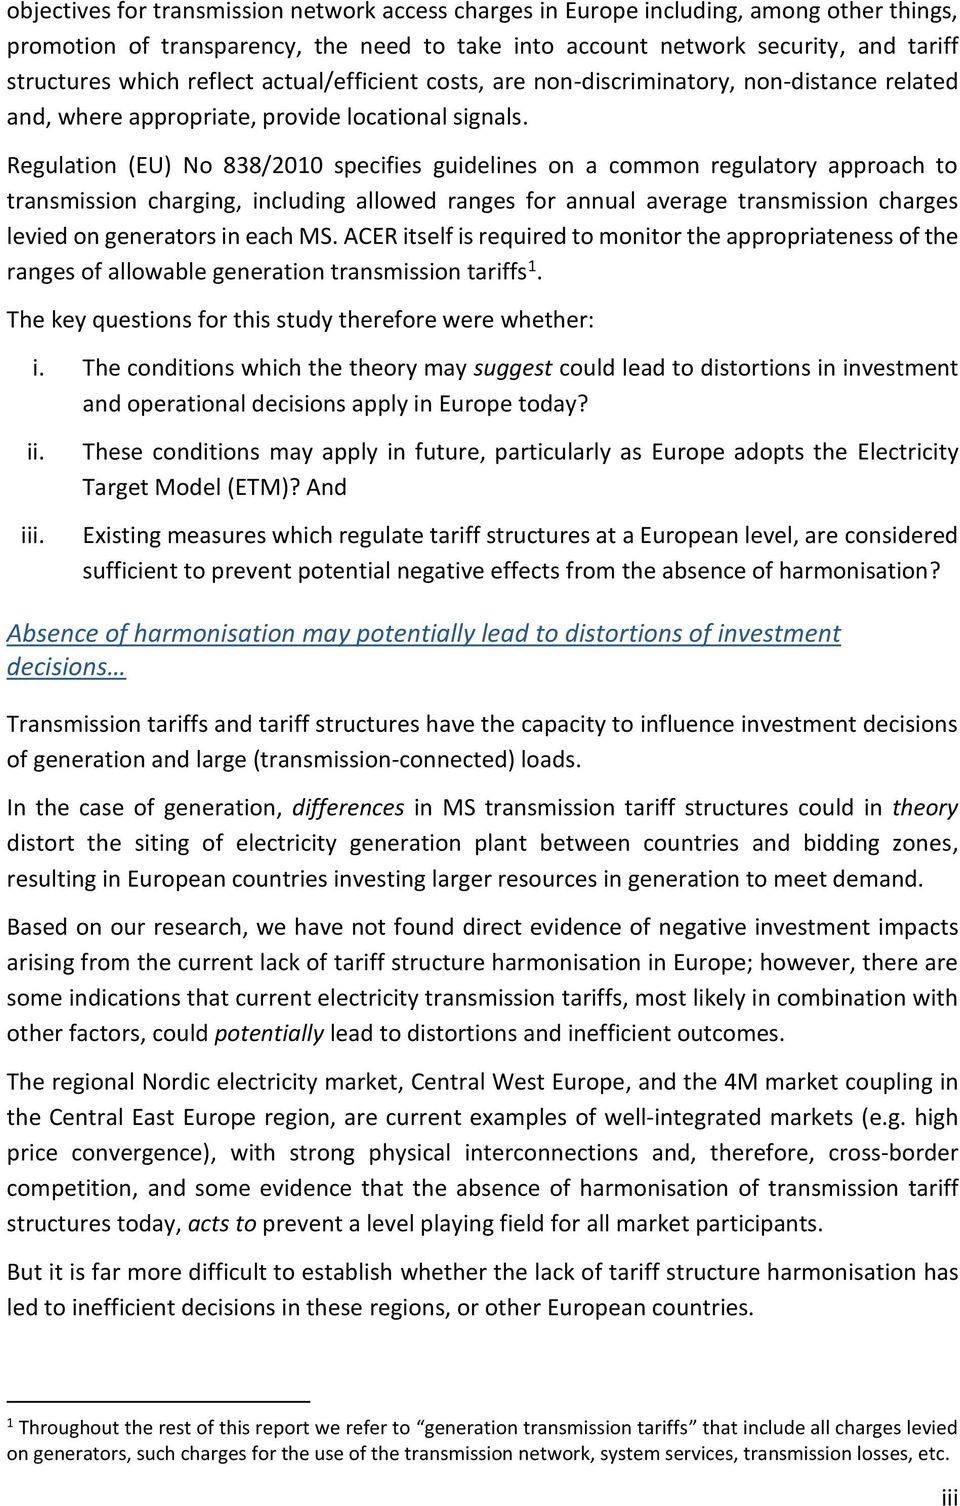 Regulation (EU) No 838/2010 specifies guidelines on a common regulatory approach to transmission charging, including allowed ranges for annual average transmission charges levied on generators in